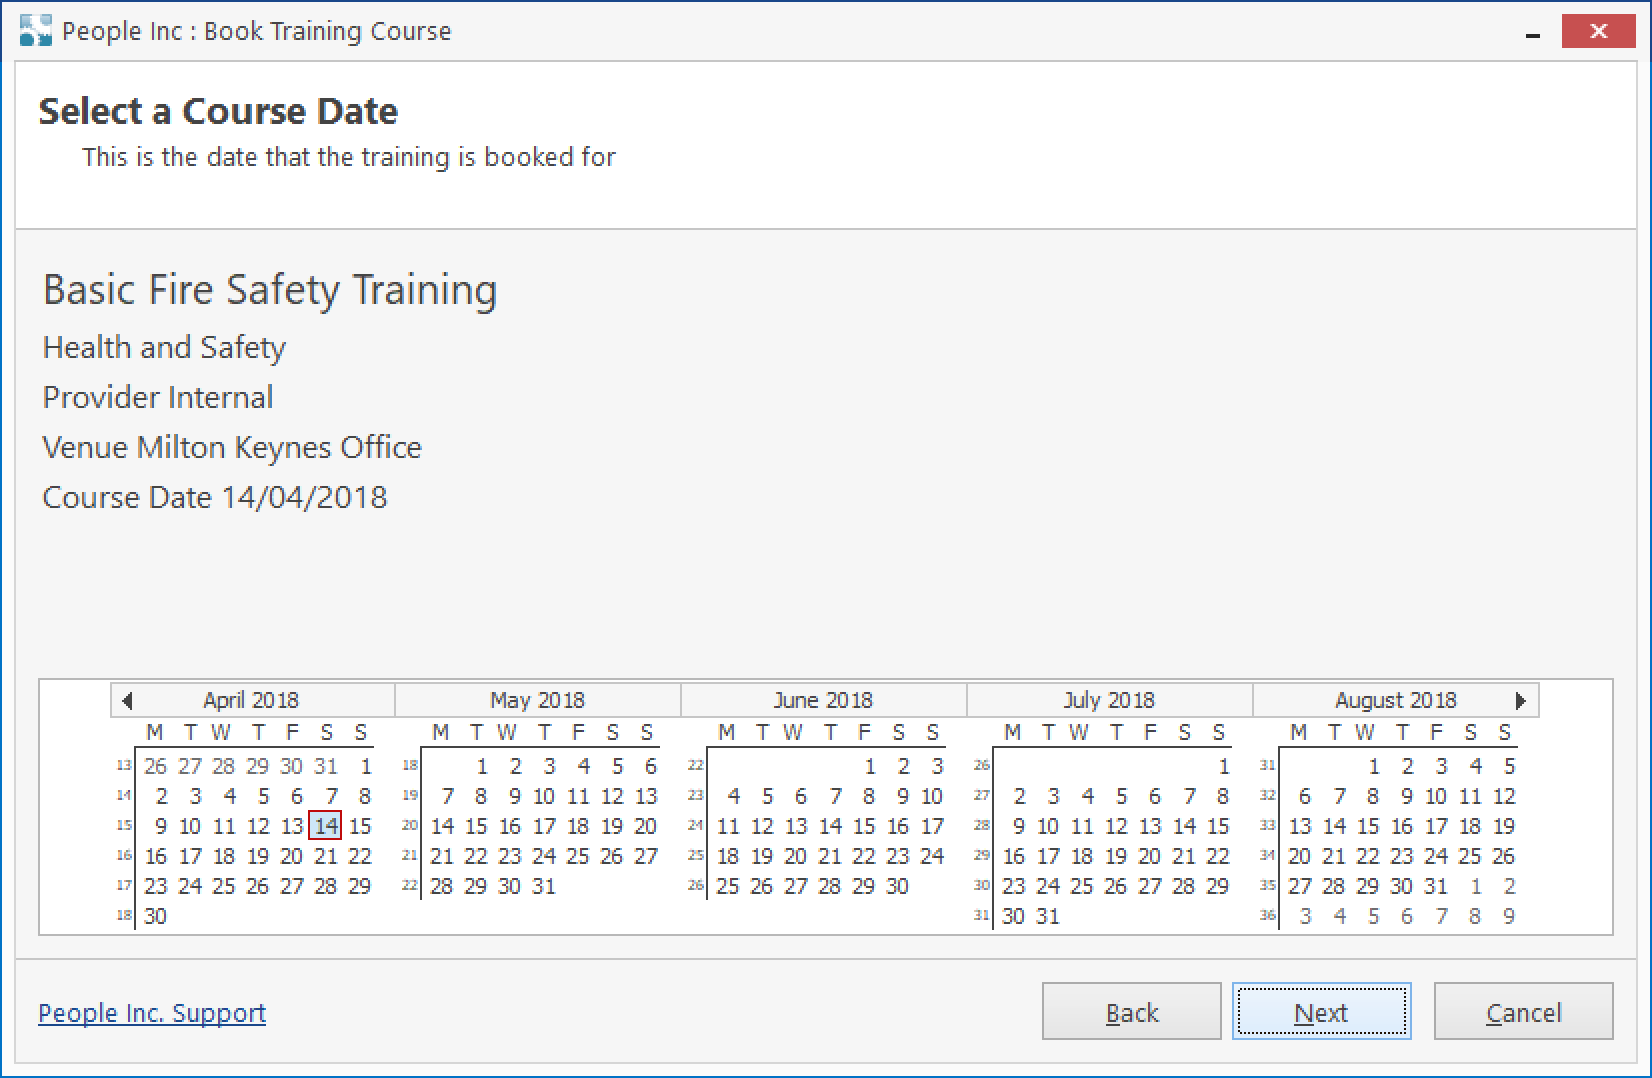 People Inc HR system tool showing course details with a calendar to select a booking date from